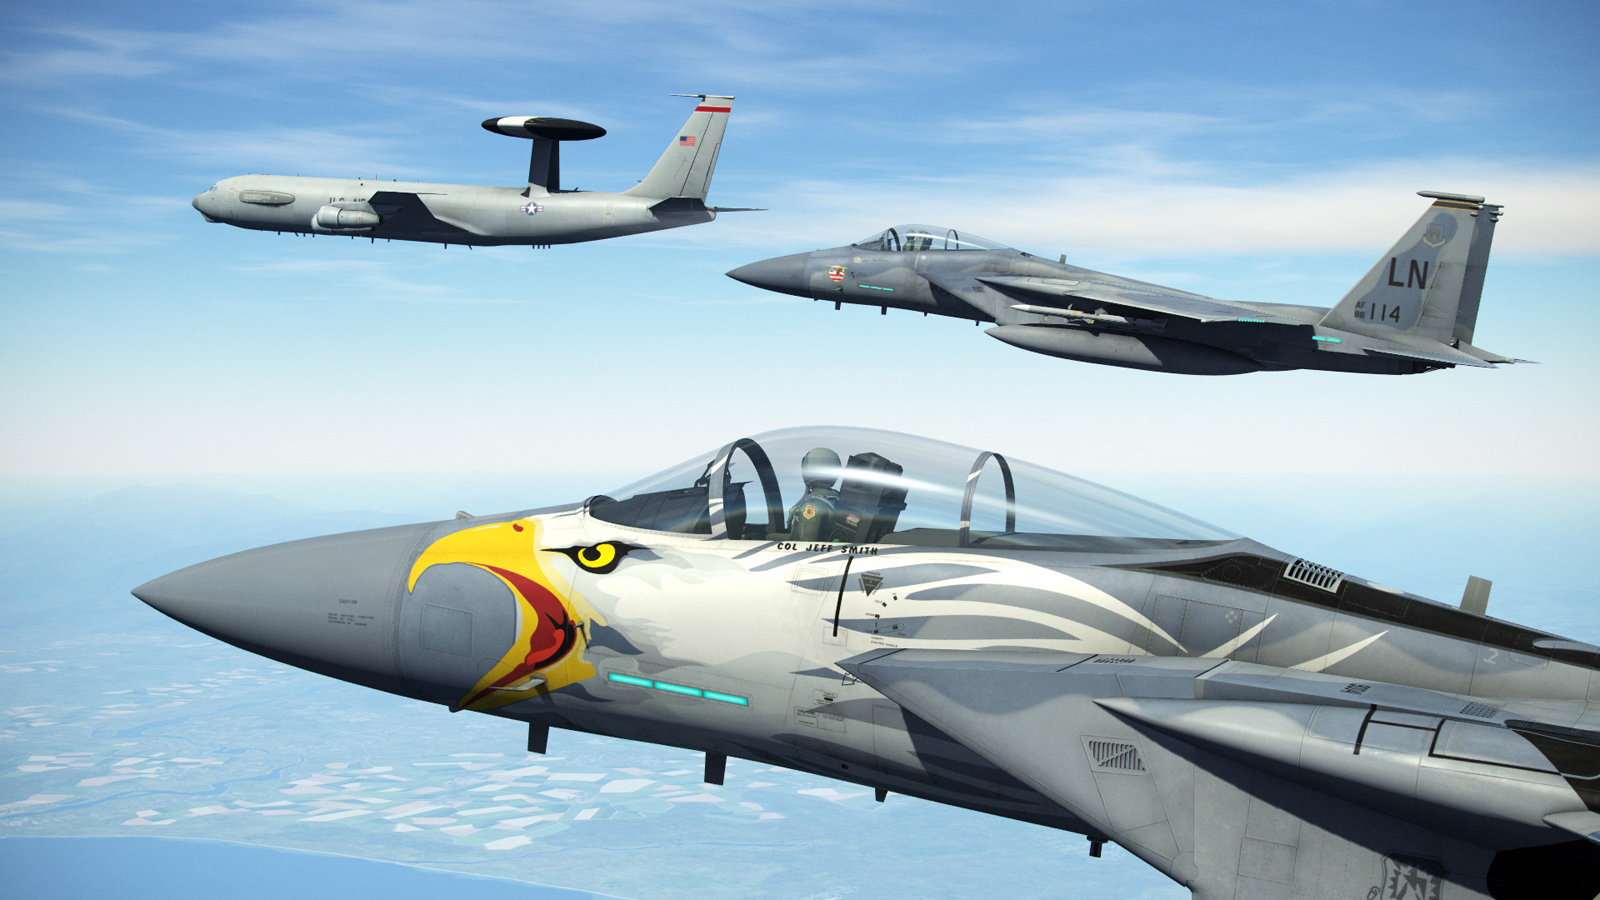 The 10 Most Badass Fighter Jet Liveries Of All Time